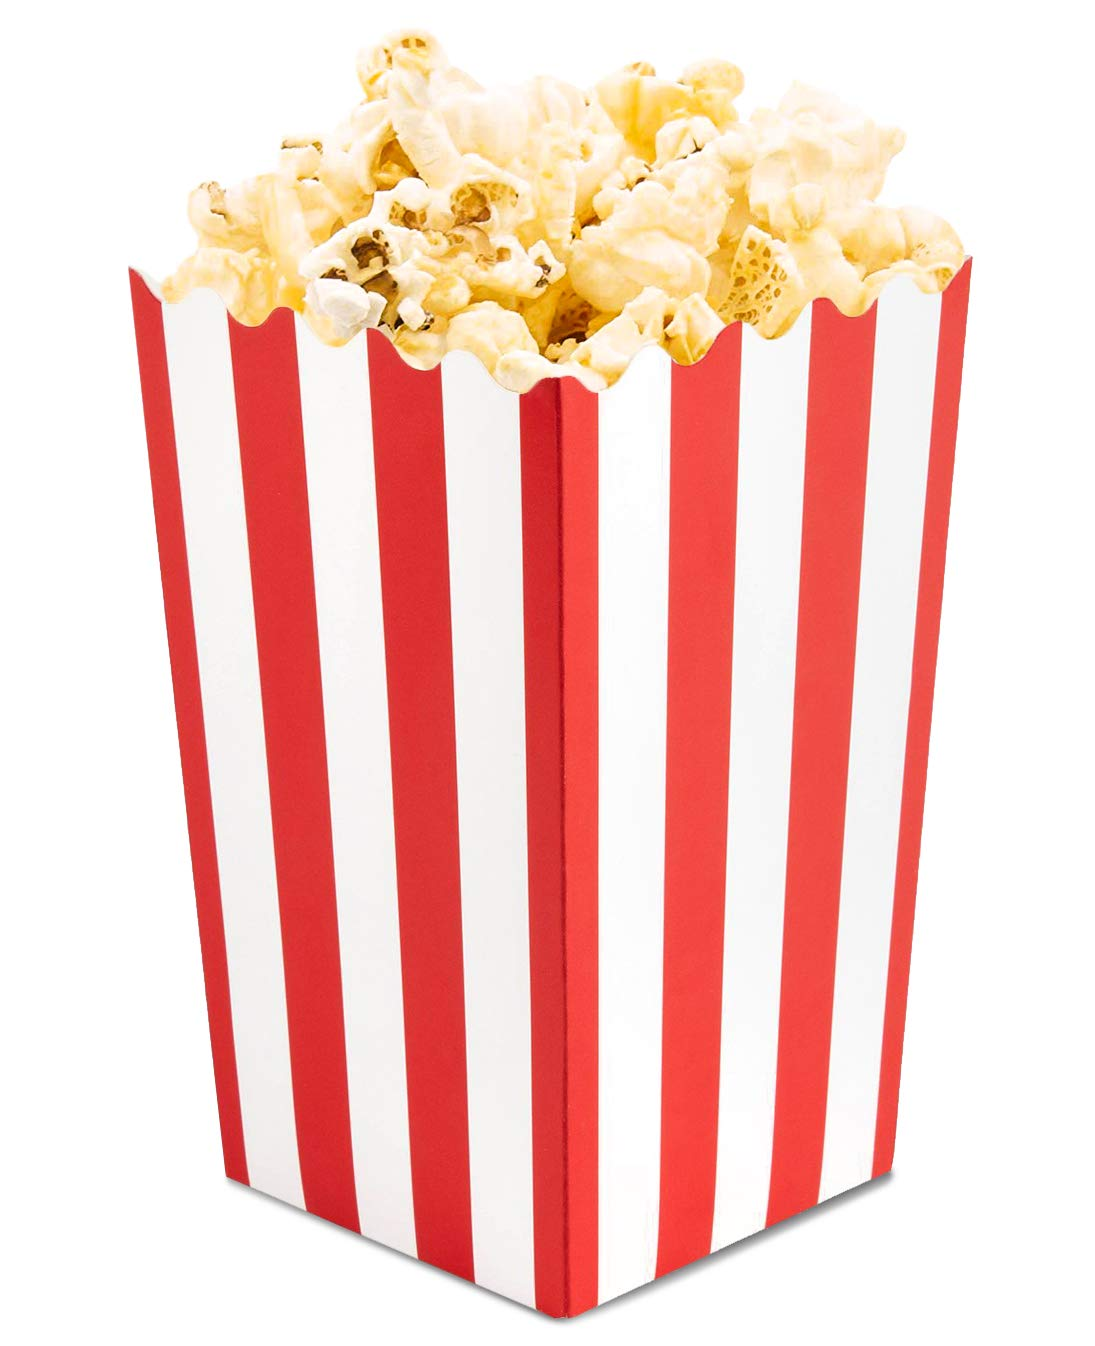 Set of 100 Popcorn Favor Boxes - Mini Paper Popcorn Bags and Snack Containers, Carnival Party Supplies for Movie Night, Movie Theme Party, Red and White, 3.5 x 3.5 x 5.5 Inches by